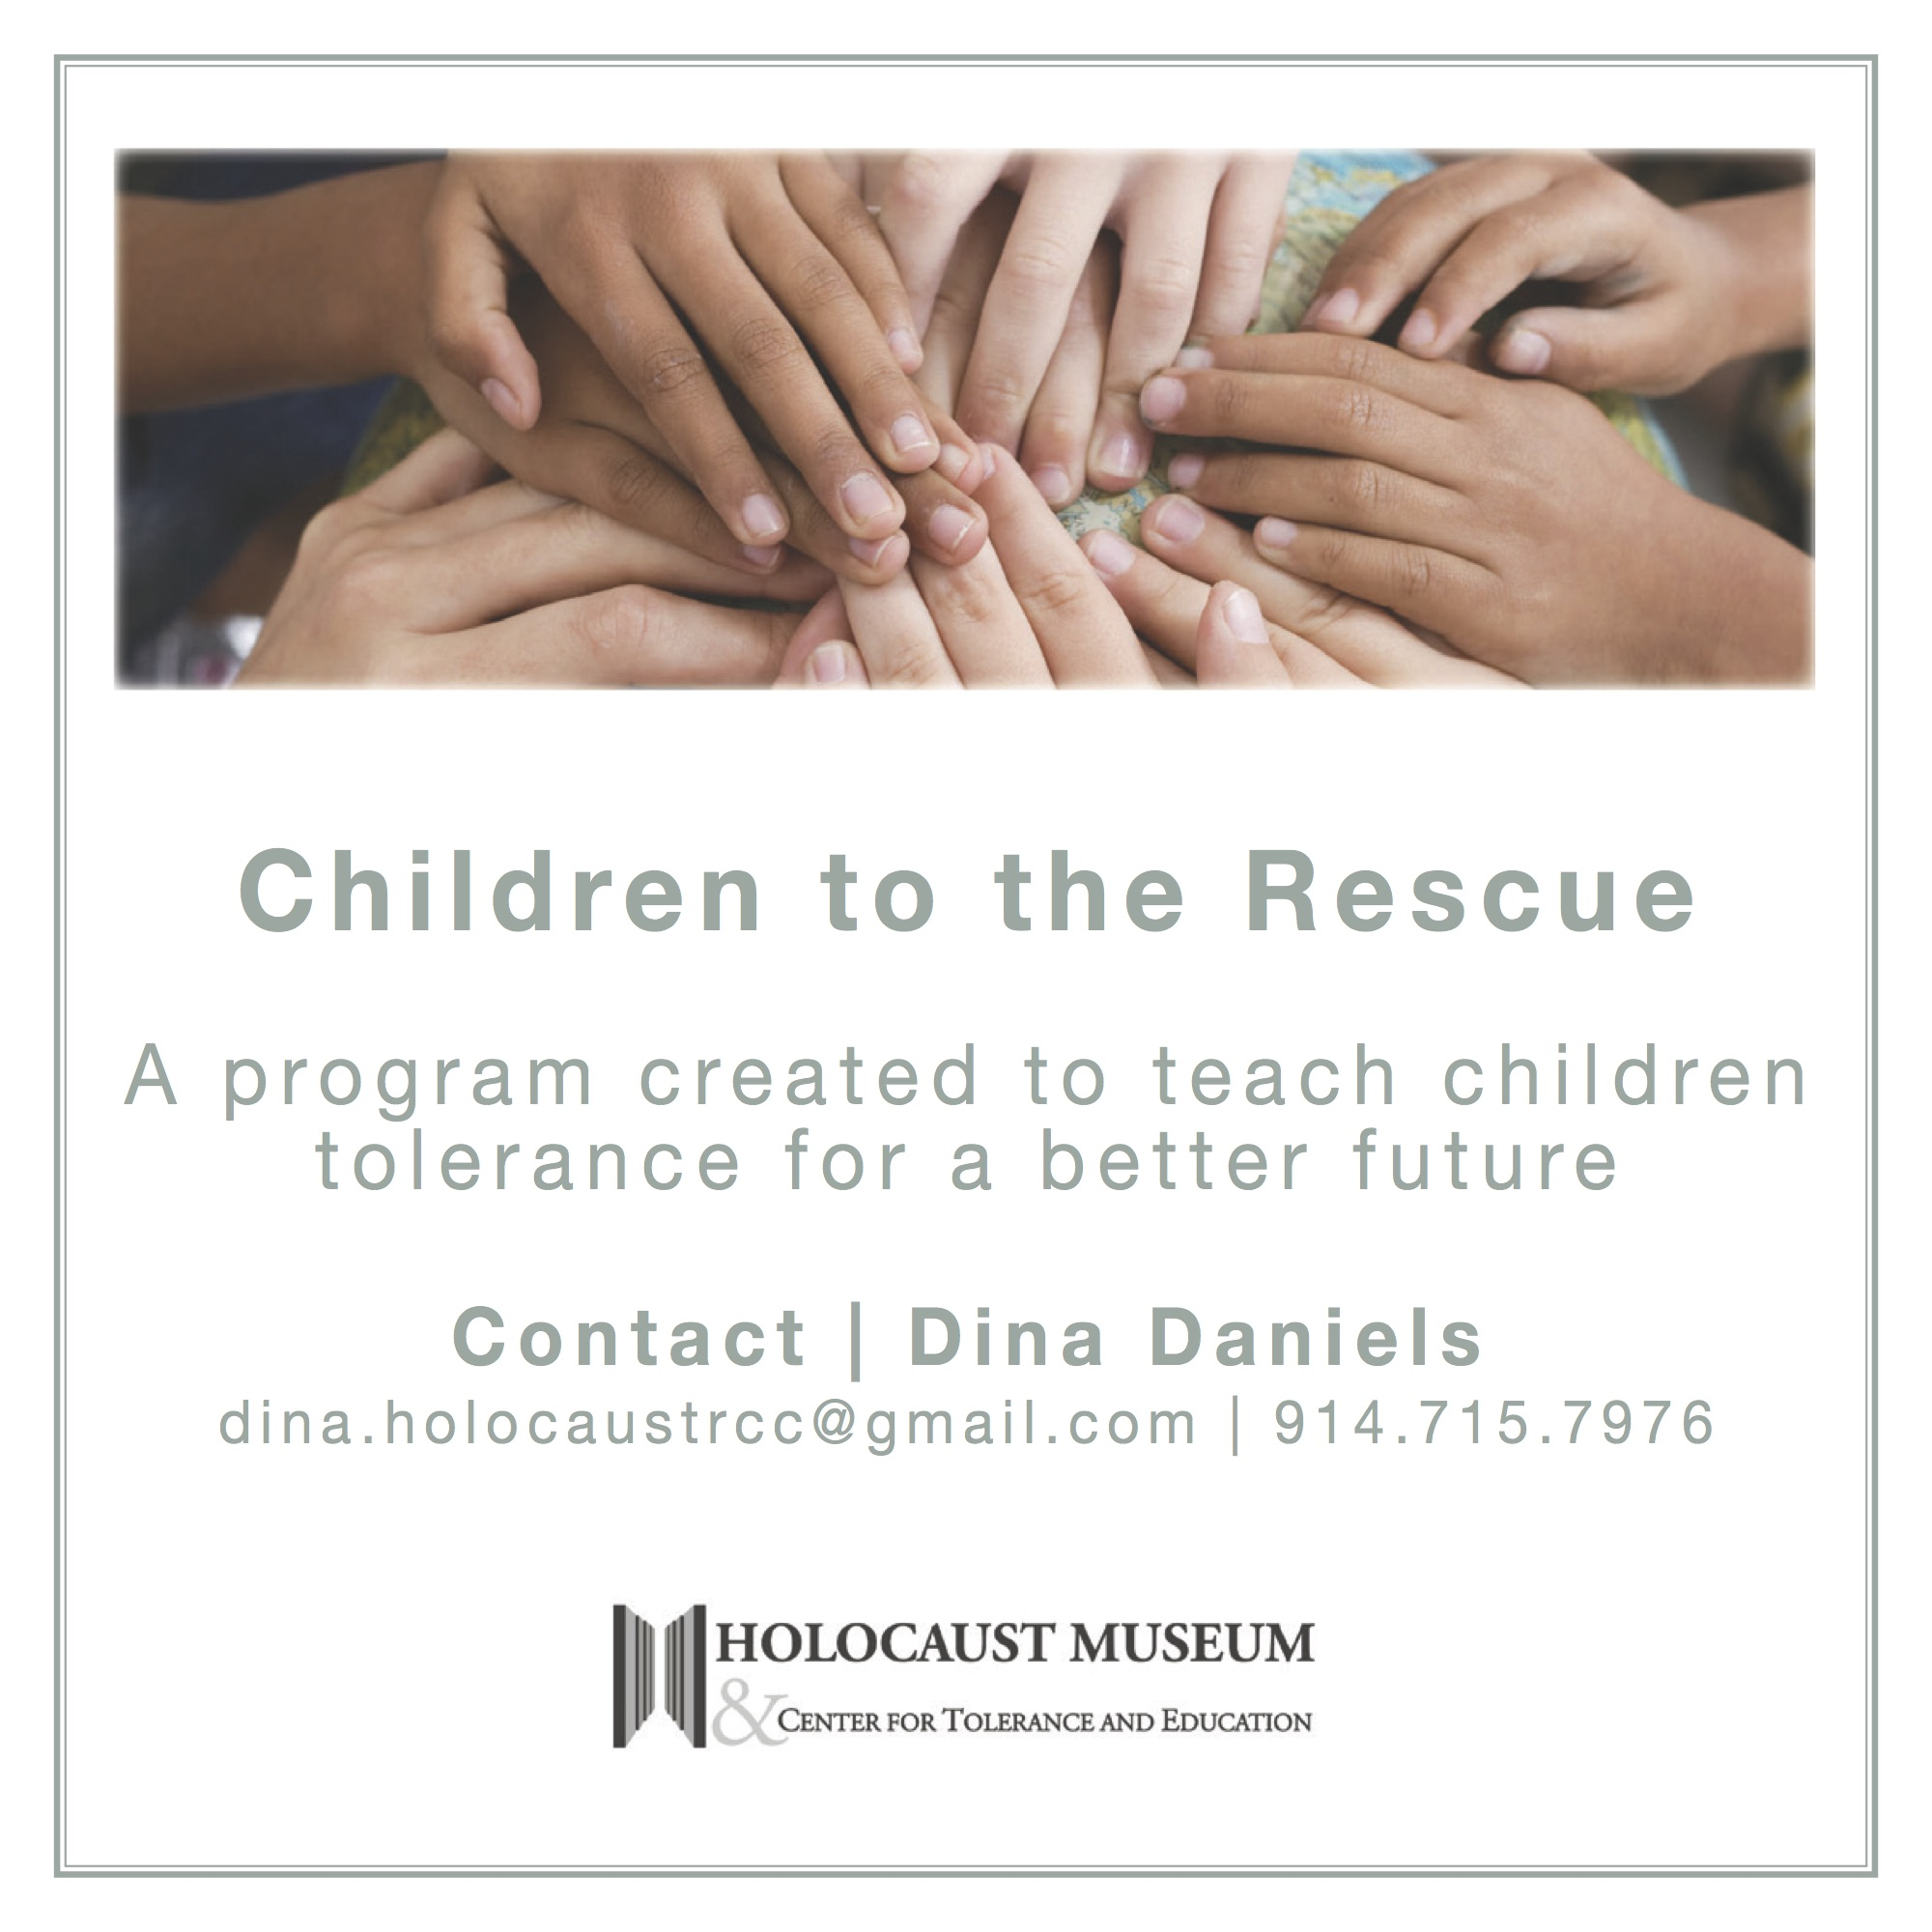 Children to the Rescue event flyer